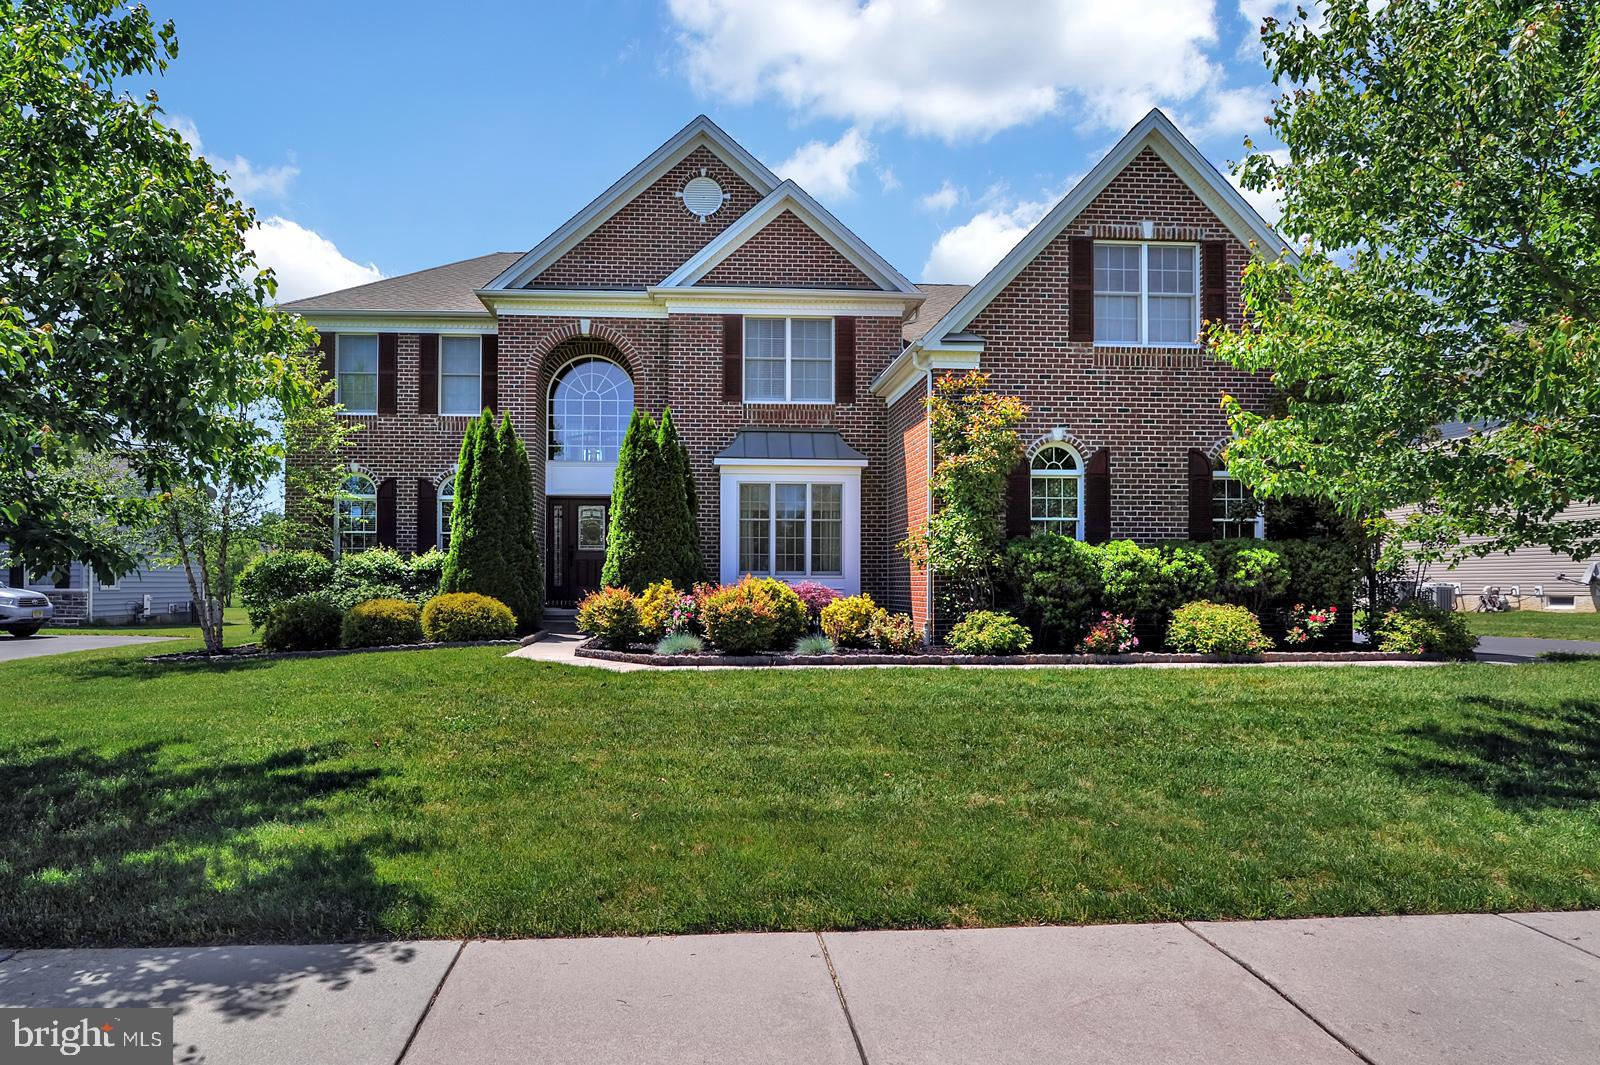 This stunning 5 bedroom 4 an a half bath home is located in the sought after community of Red Lion Chase! The beautiful brick front offers enhanced and elegant curb appeal as well as beautifully maintained landscaping. Upon entering the home, you will be amazed by the split staircase and take note of the rich hardwood flooring that leads to the oversized eat-in kitchen. Complete with walk-in pantry,  oversized center island, and stainless steel appliances. In addition to an open floor plan concept, as well as a living/dining room combination with a stone fireplace and family suite with full bath.. Upstairs you are welcomed by 4 additional bedrooms, including the master suite with 3 walk in closets, beautiful tile bathroom  and a sitting room. Another bedroom with attached bathroom and 2 additional oversized bedrooms with walk in closets and a shared hall bathroom.  In addition, there is an oversized side entry 3 car garage perfect for storage and a beautiful composite deck perfect for lounging. Also, enjoy the community amenities, swimming pool, tennis courts, clubhouse and fitness center - schedule your showing today, meticulous home will not last long!